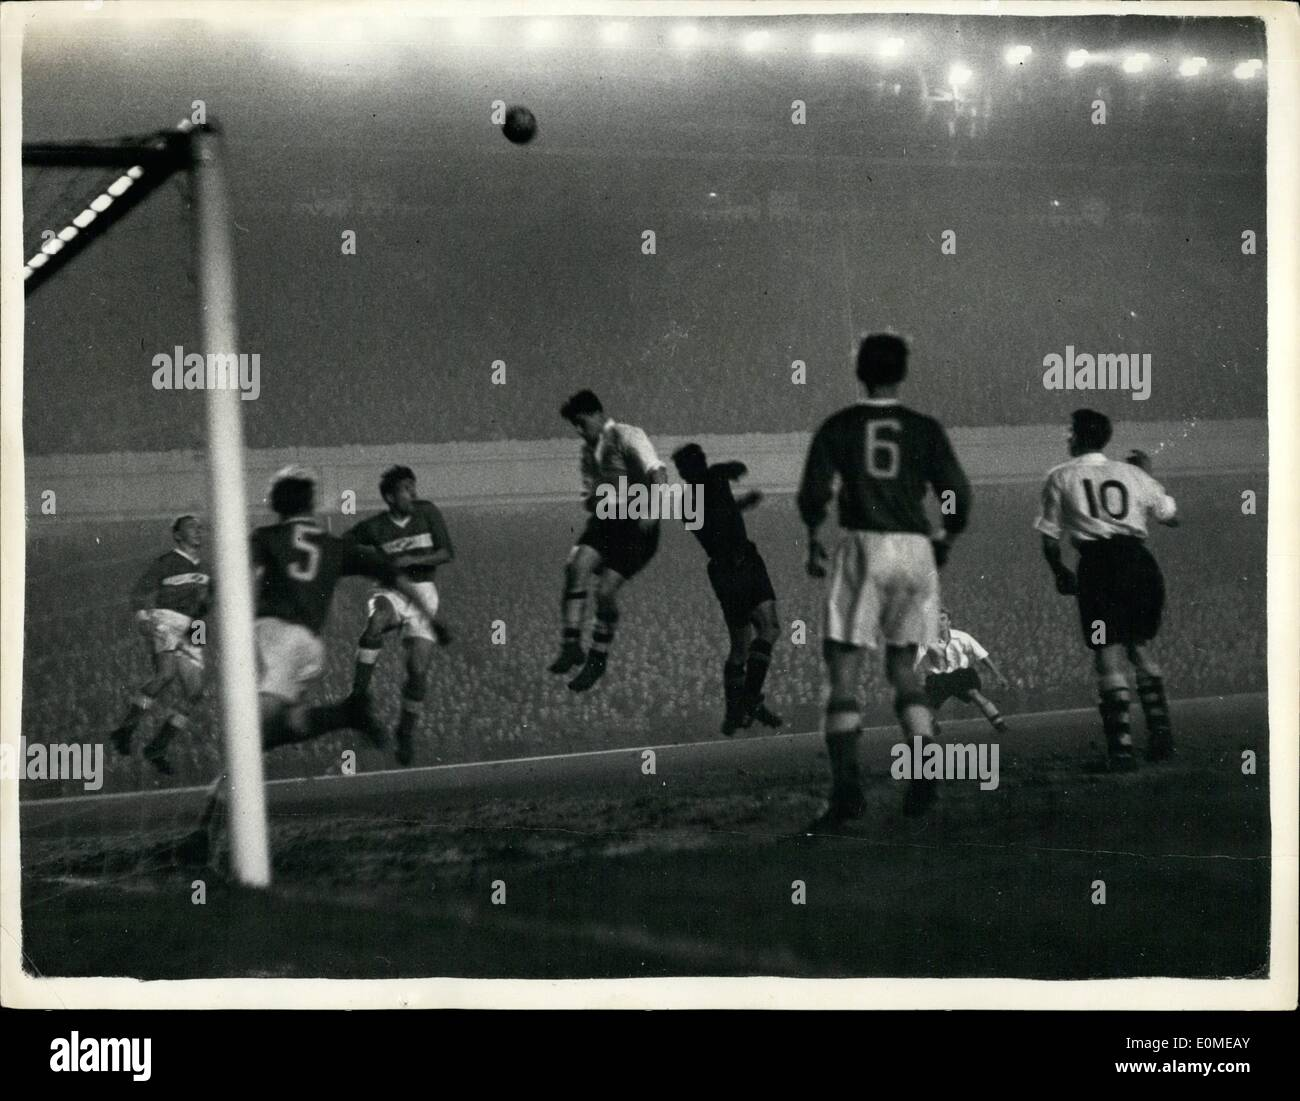 11 November 1954 Flutlicht Fussball Bei Highbury Arsenal V